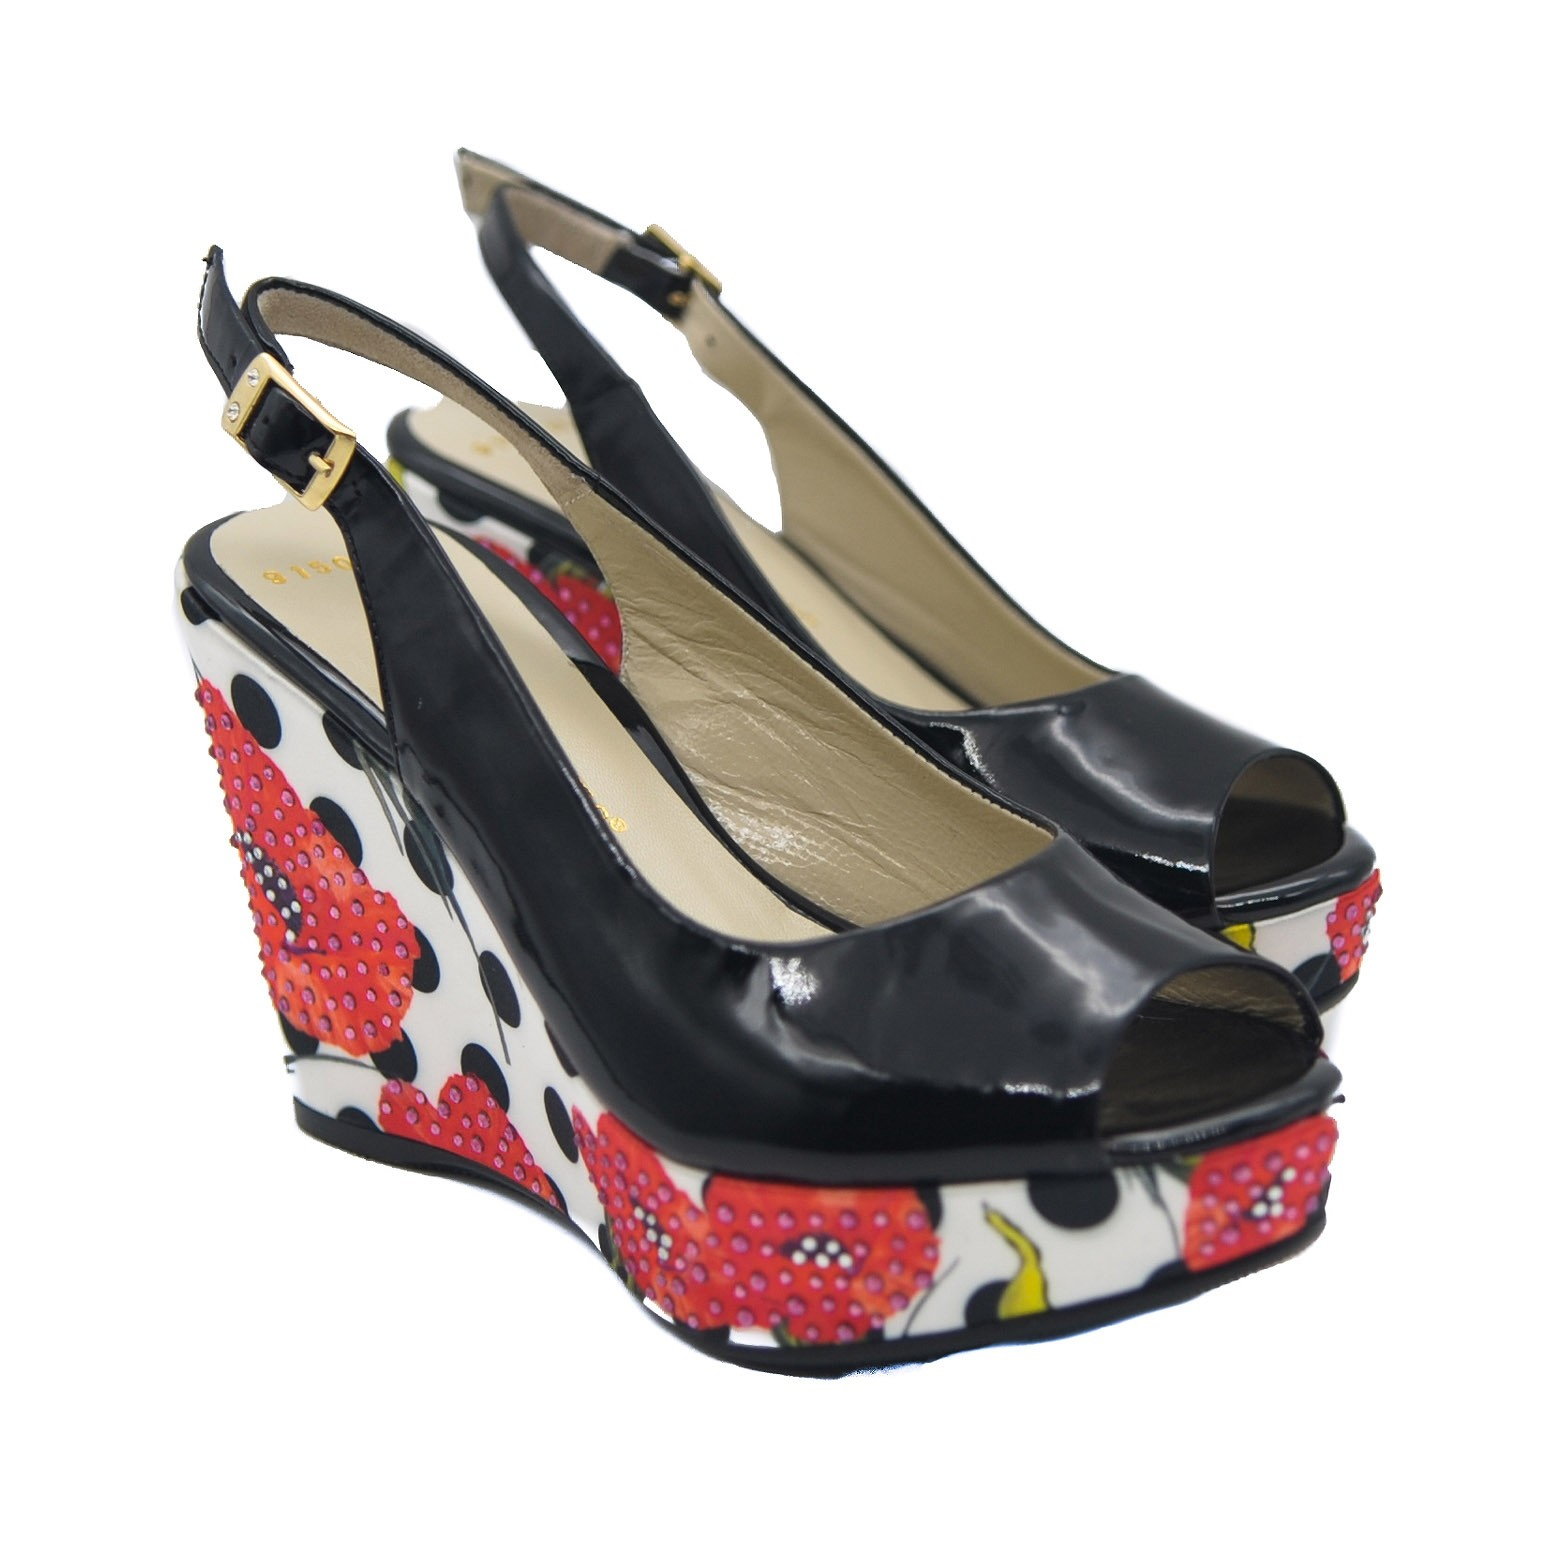 Goody2Shoes Ladies' Black Patent Peep Toe Slingback Wedges with Poppies